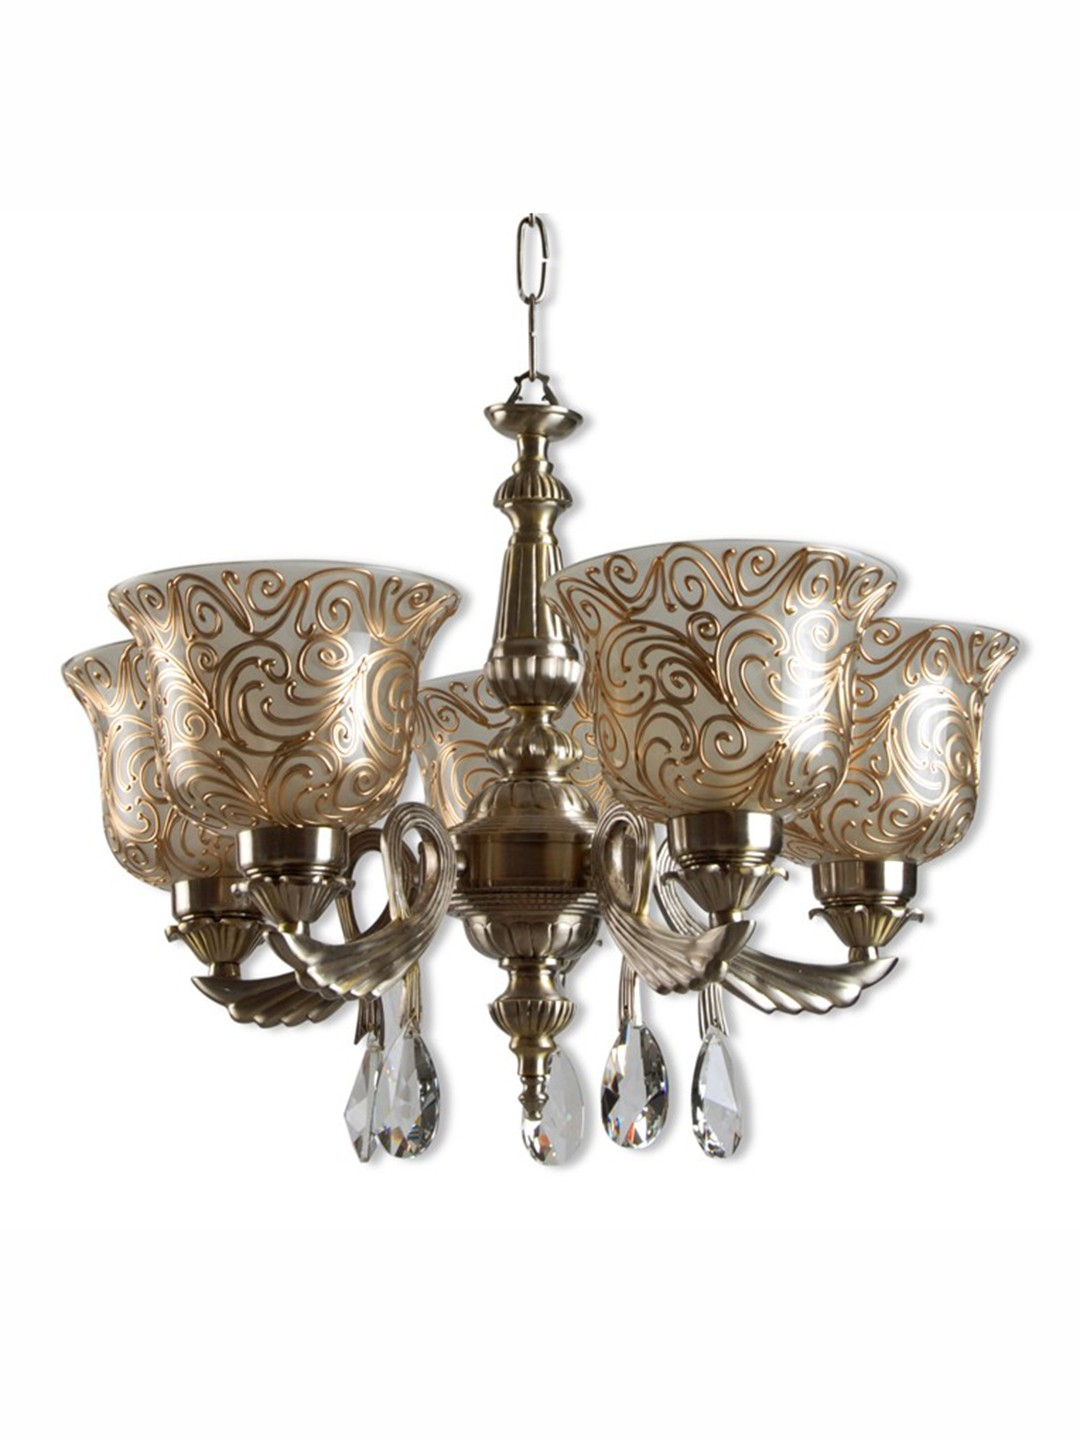 Badam Kapa 5 Light Antique Brass Chandelier